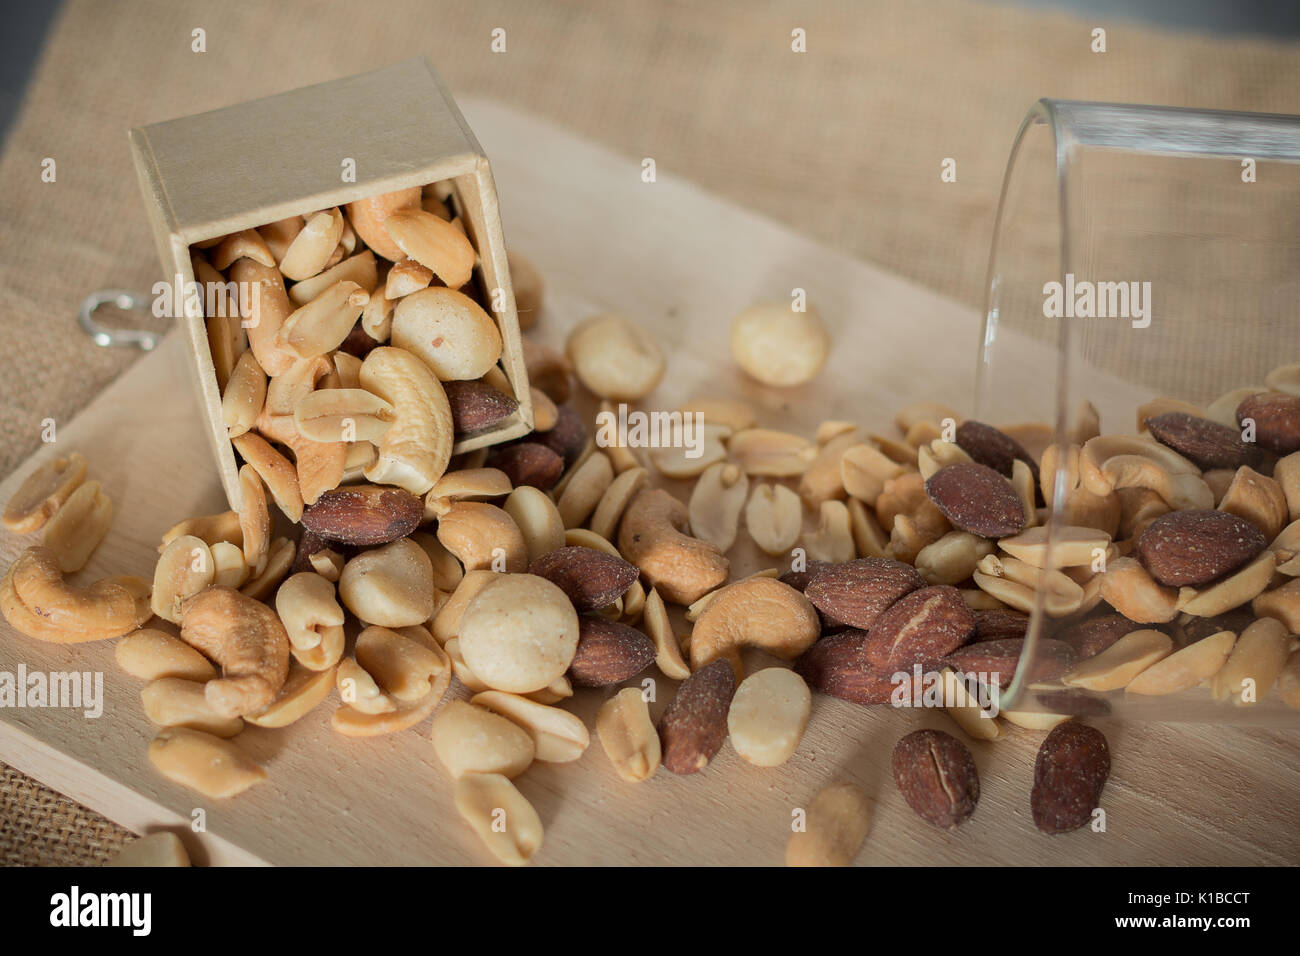 fresh roasted cocktail nuts (many type of nuts) on wooden plate - Stock Image